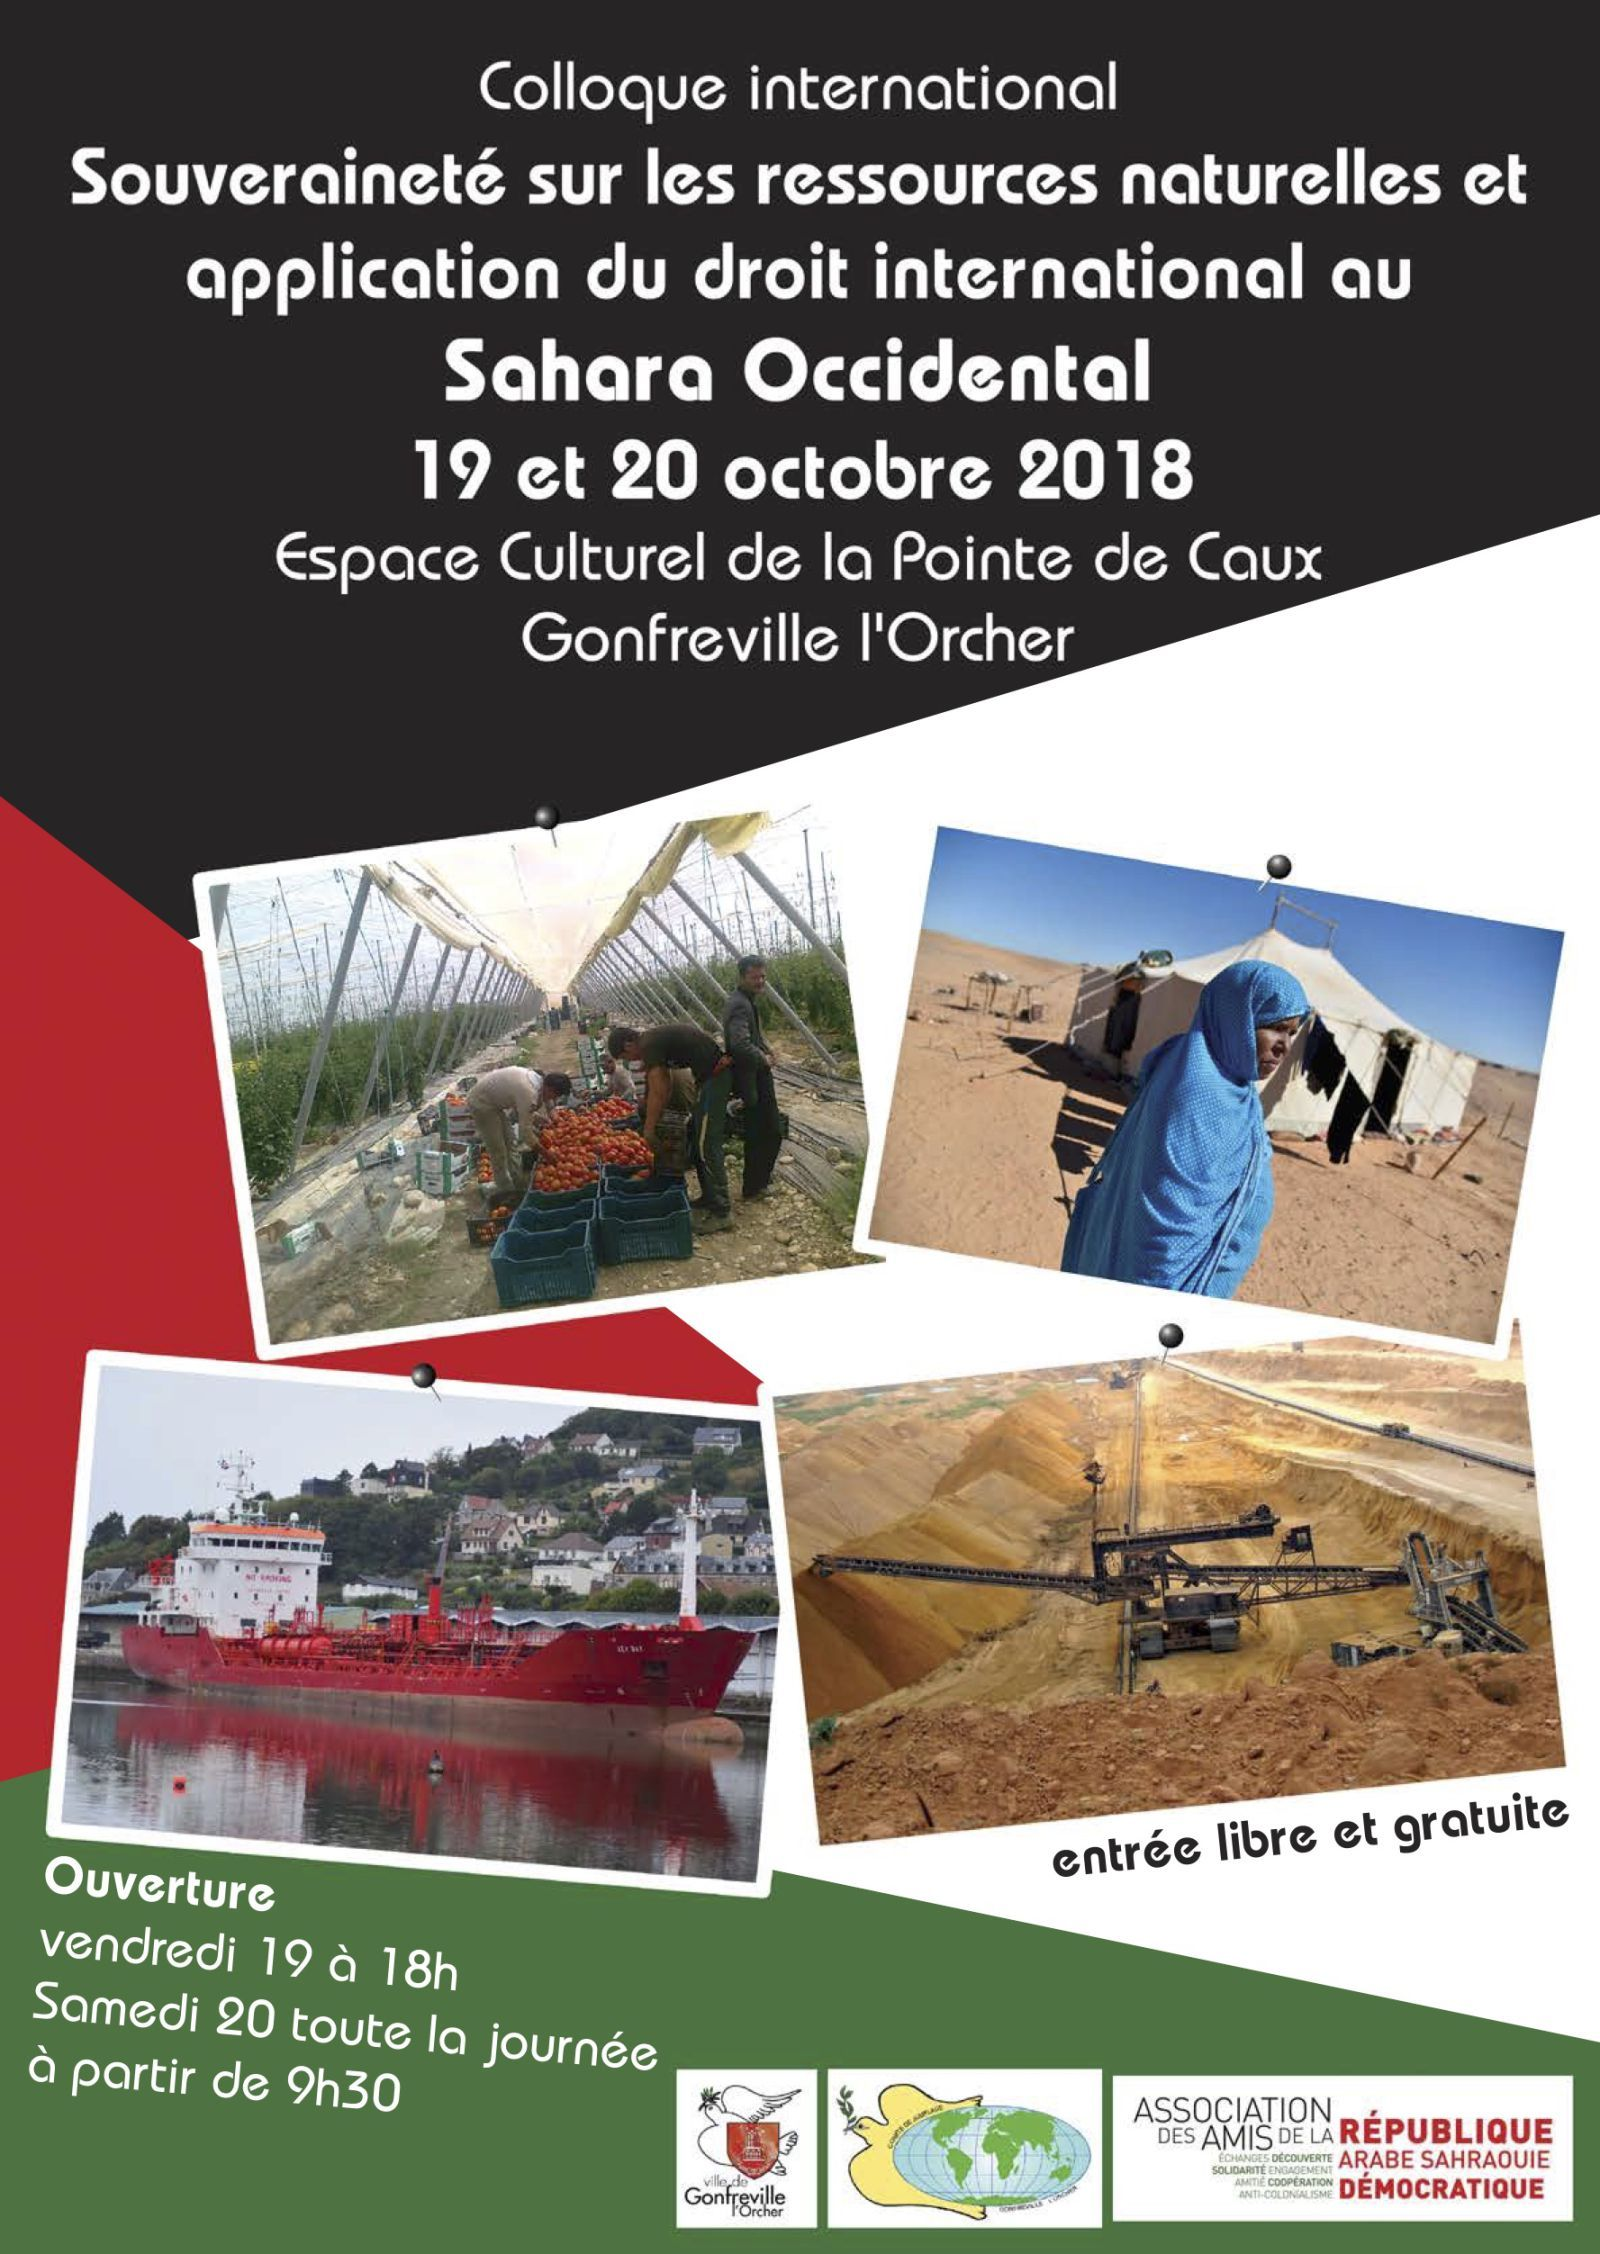 CONFERENCE ON NATURAL RESOURCES OF WESTERN SAHARA